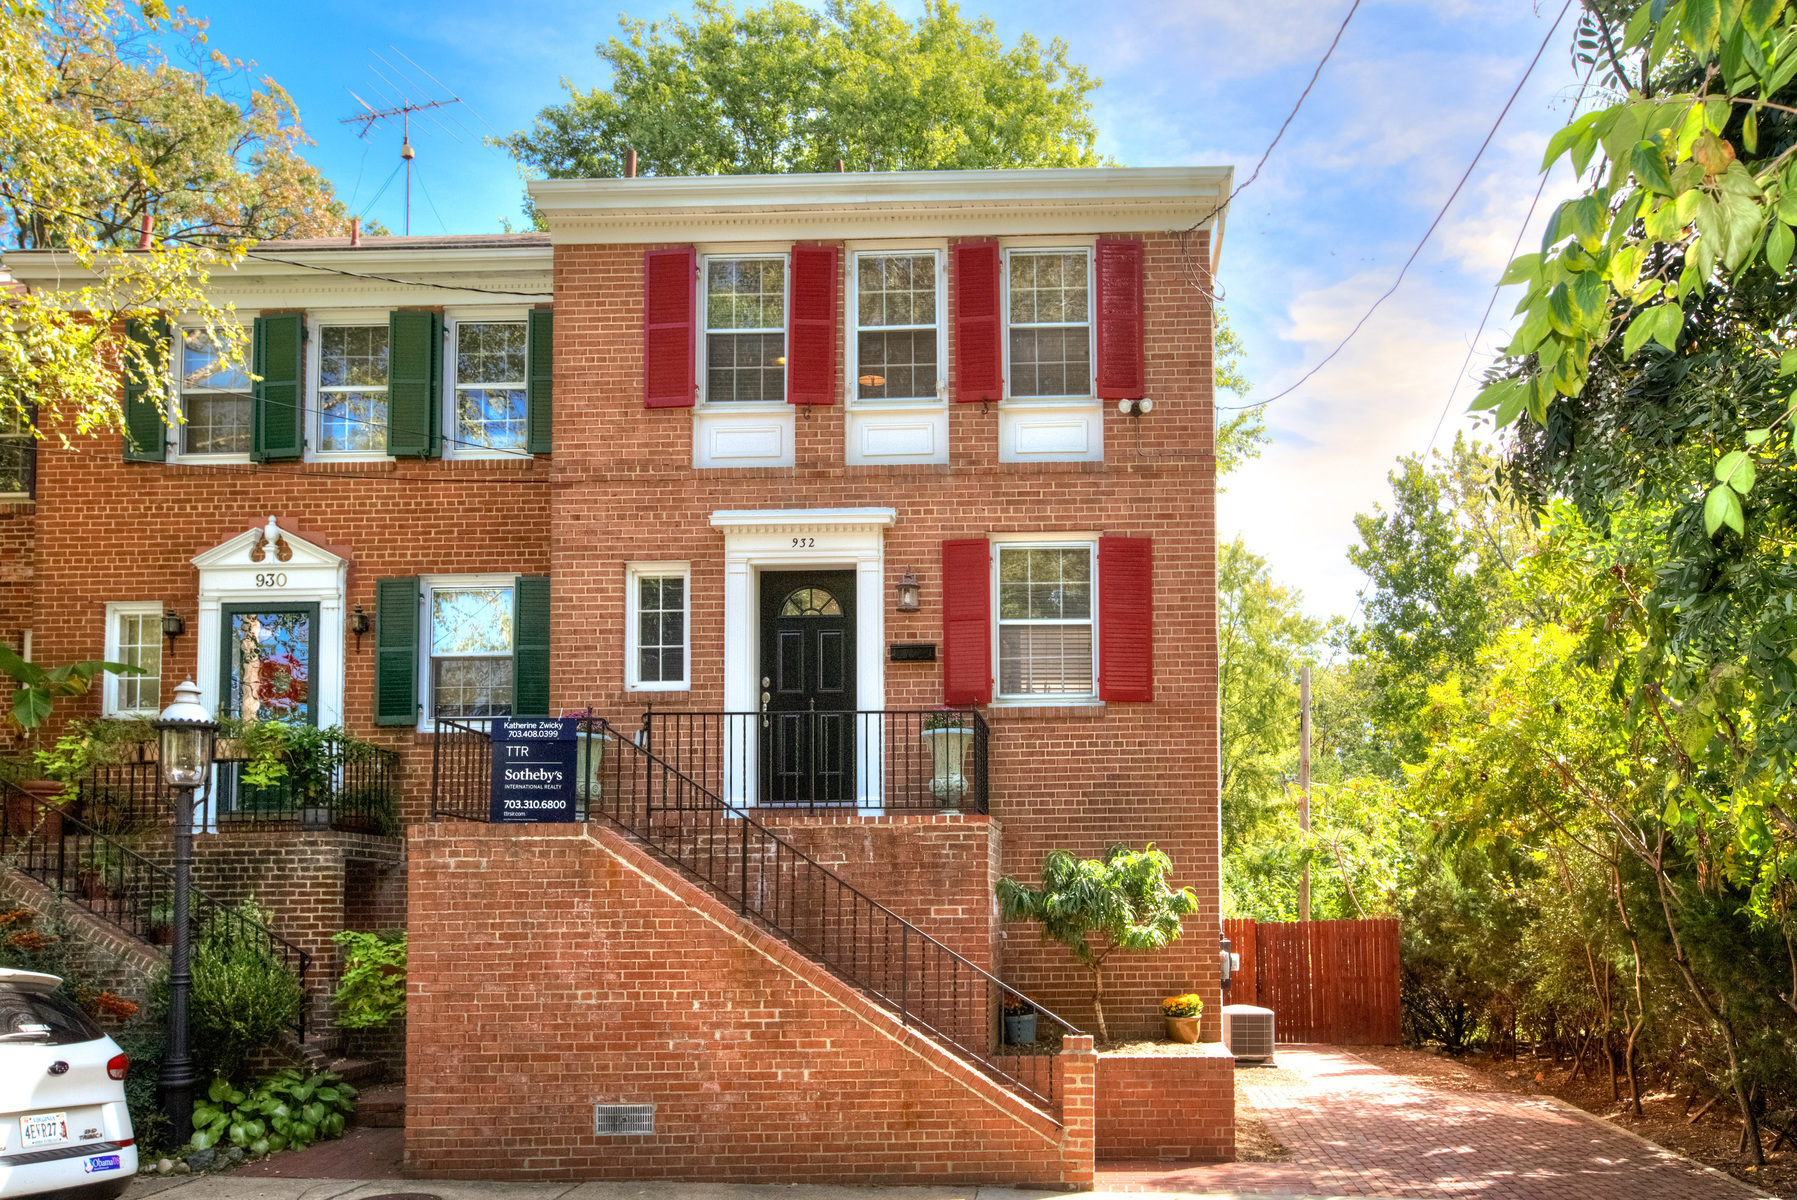 Townhouse for Sale at Old Town 932 S. Fairfax St Alexandria, Virginia 22314 United States